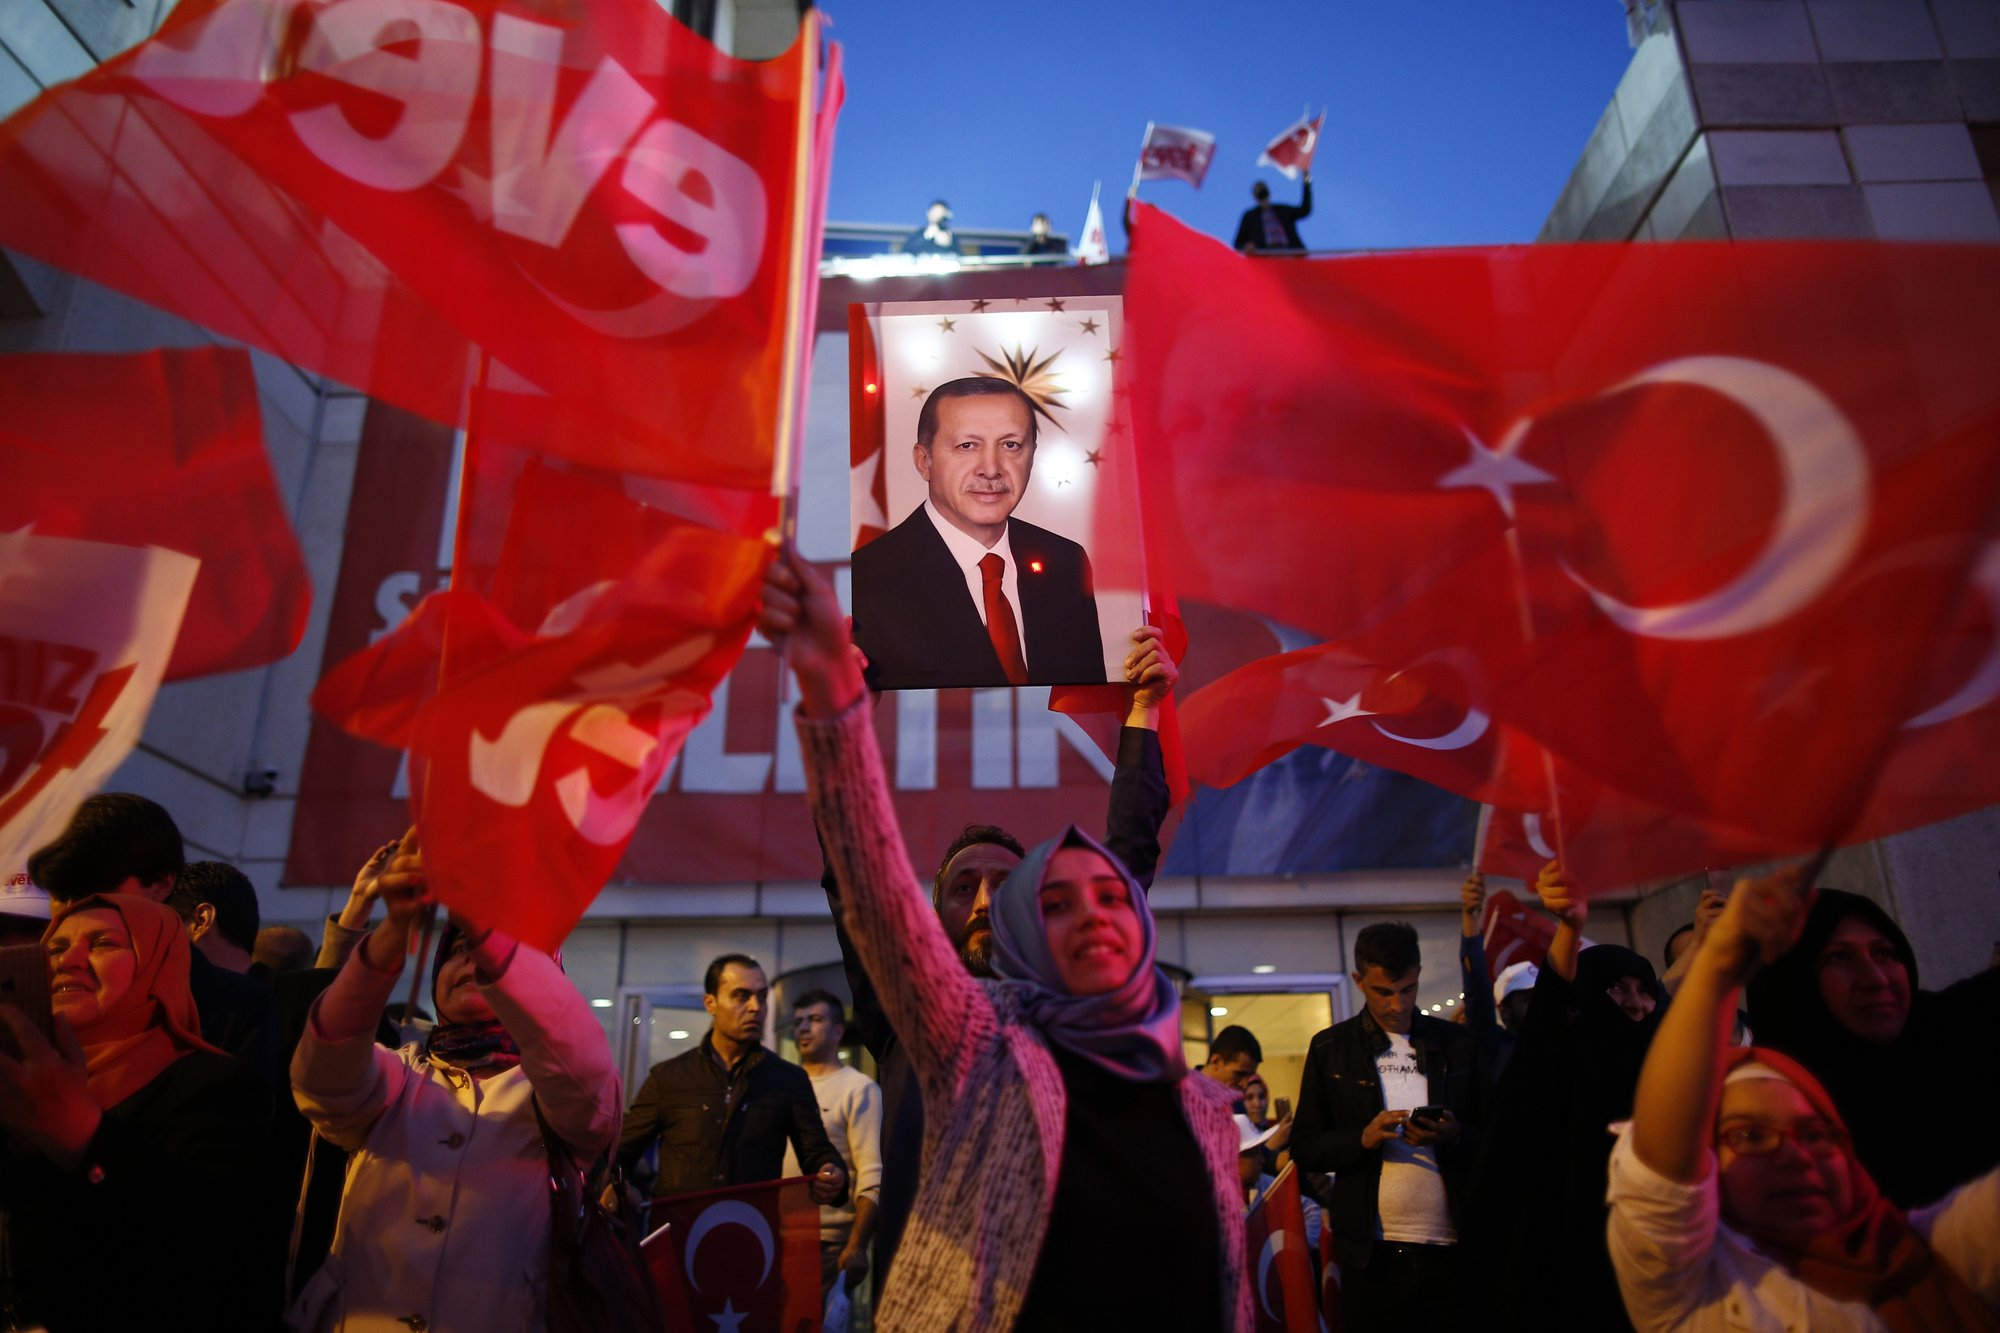 Turkey Votes To Expand Presidents Powers Critics Cry Fraud